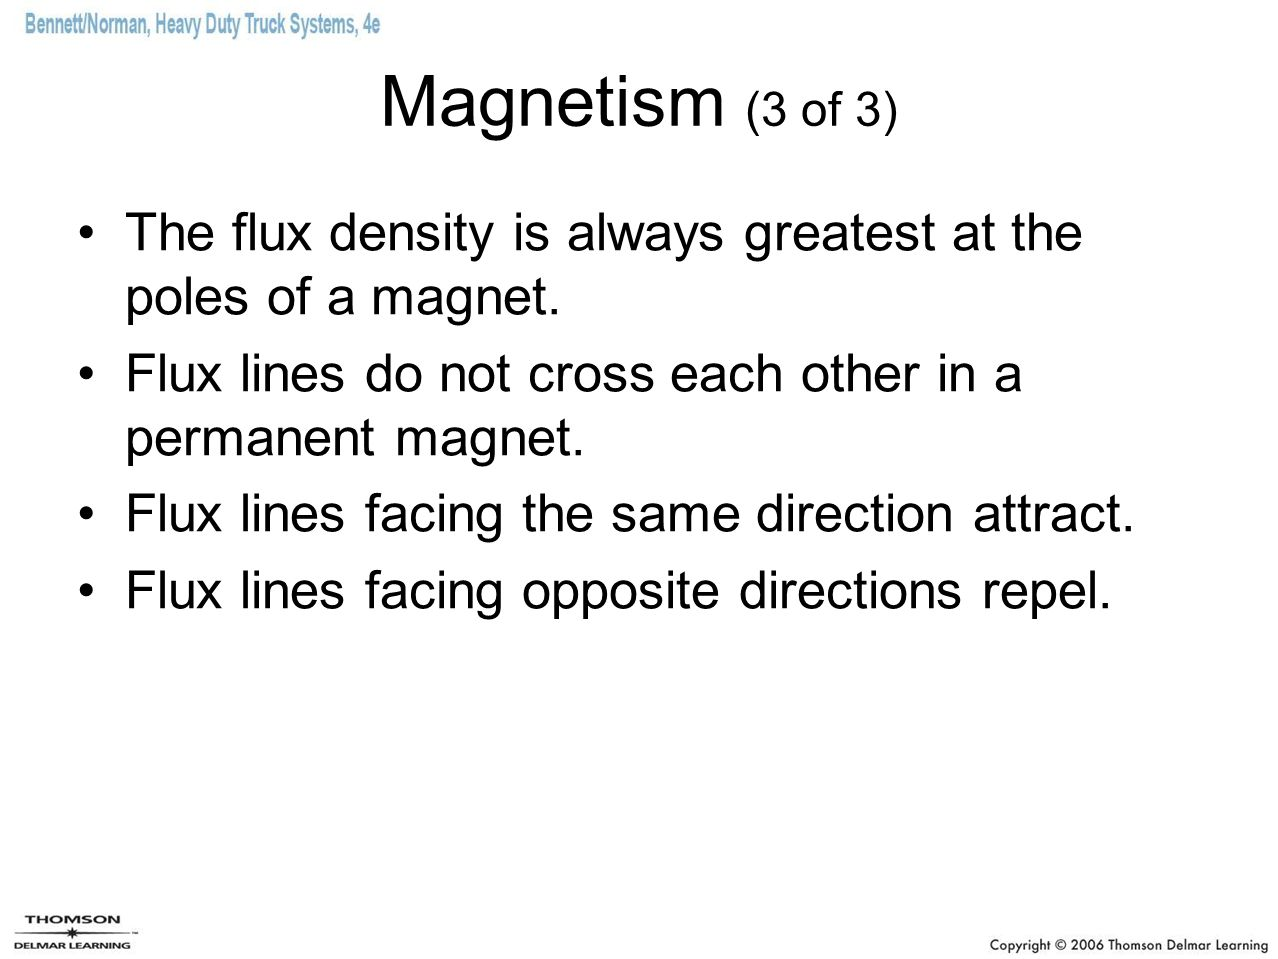 Magnetism (3 of 3) The flux density is always greatest at the poles of a magnet.